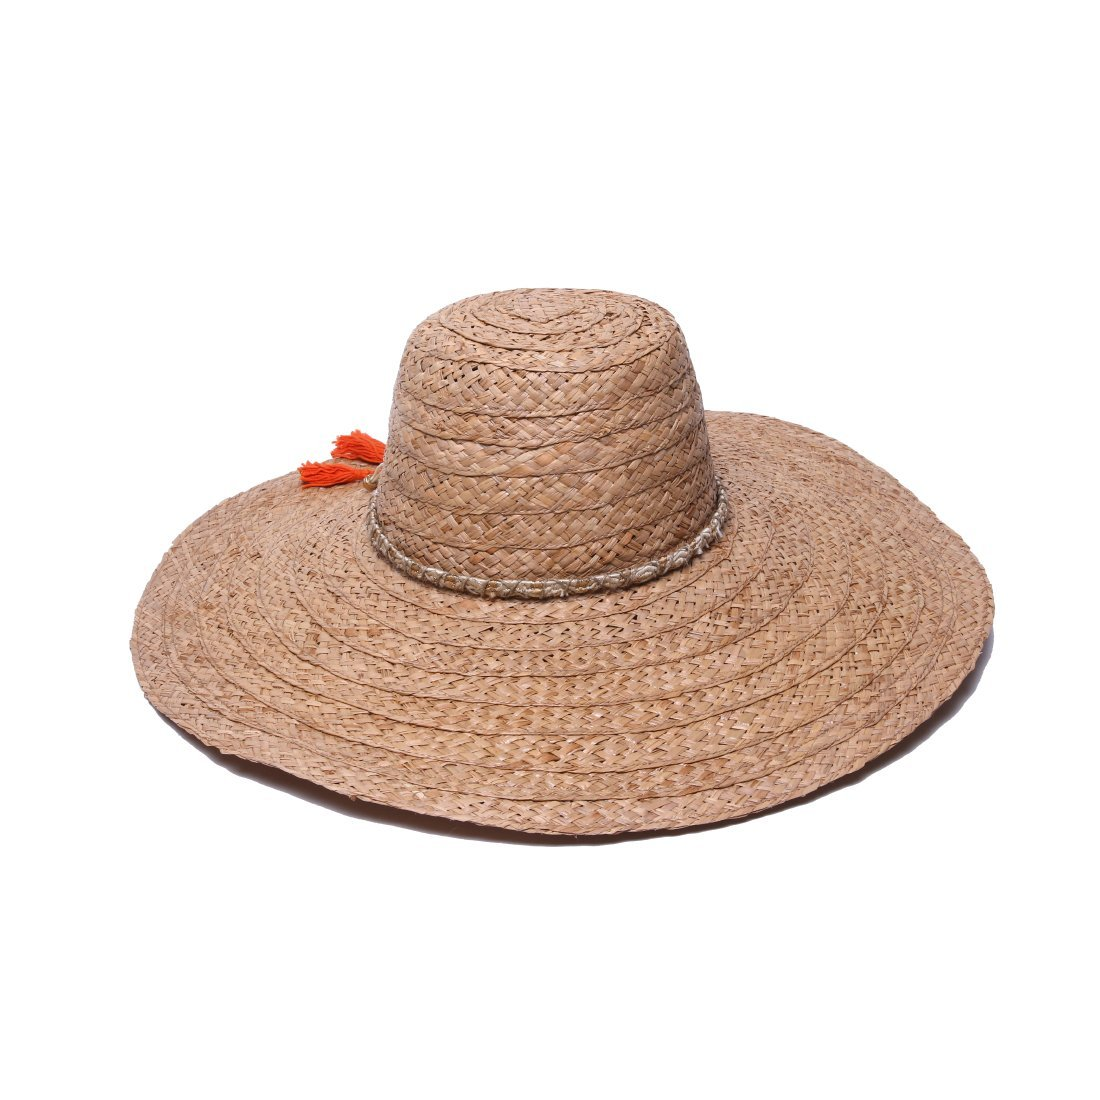 'ale by alessandra Women's Palapa Large Brim Raffia Floppy Hat With Metallic Sari Trim, Cocoa, One Size